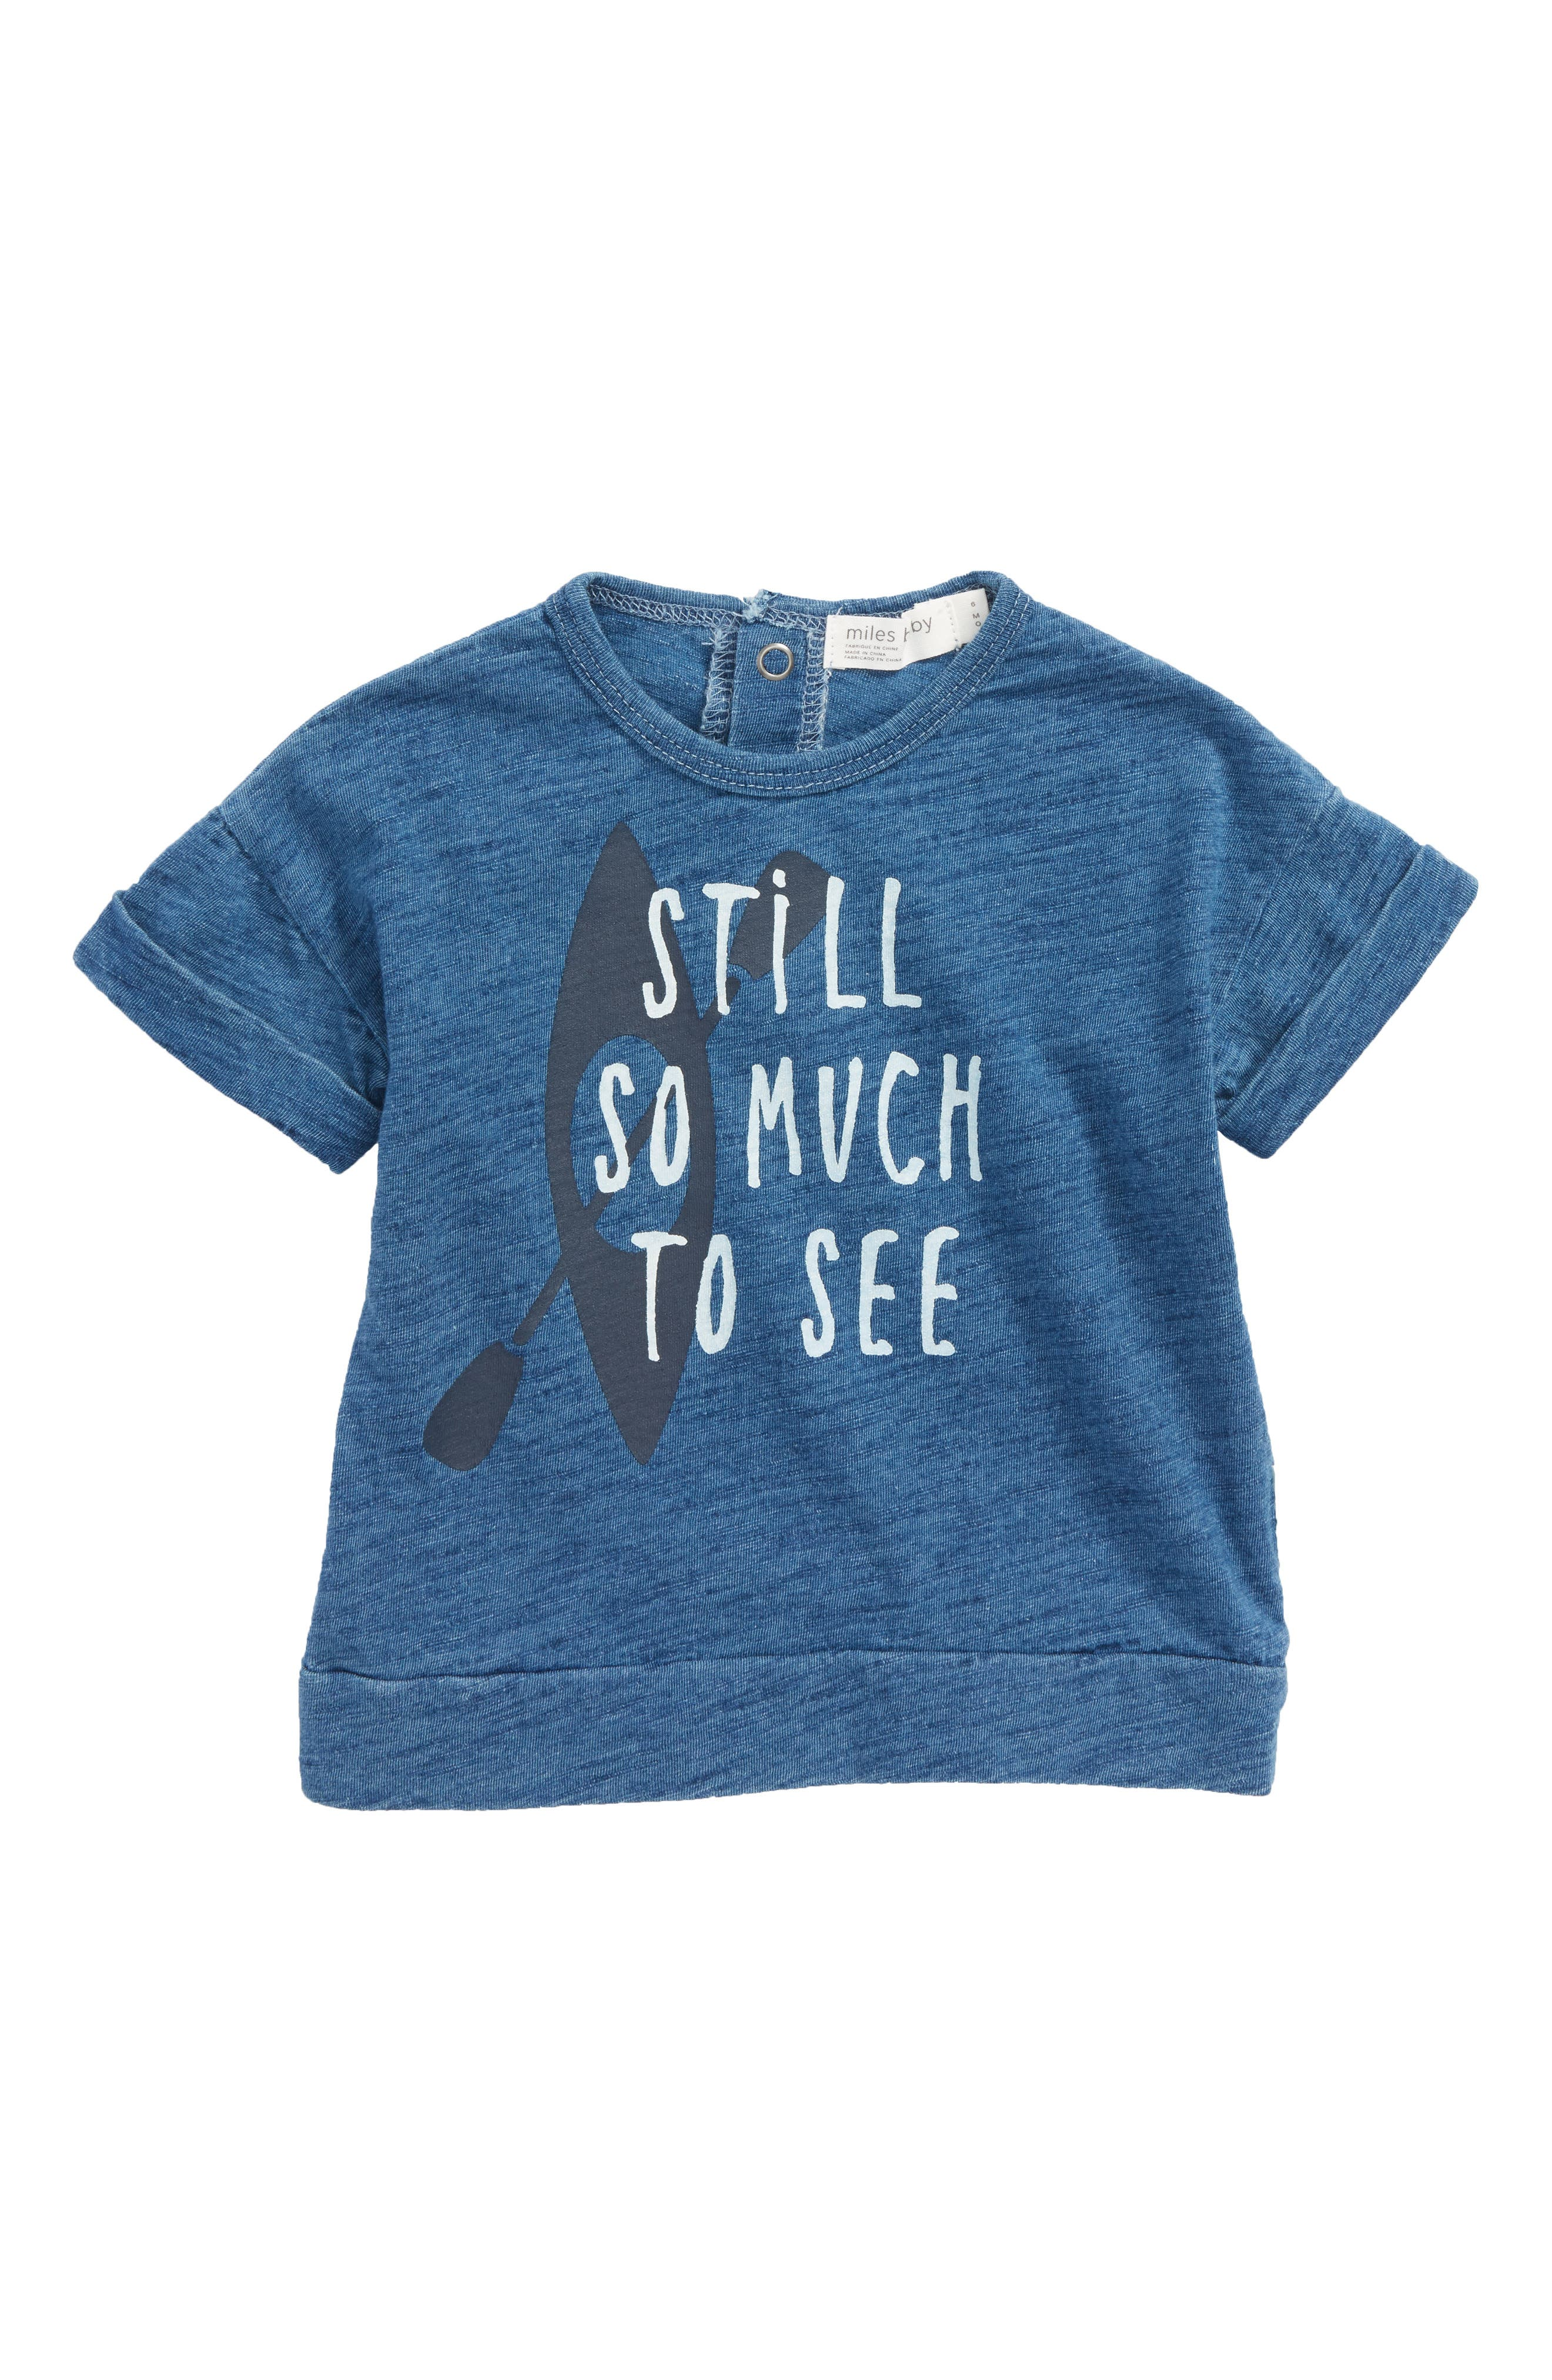 So Much To See T-Shirt,                             Main thumbnail 1, color,                             400